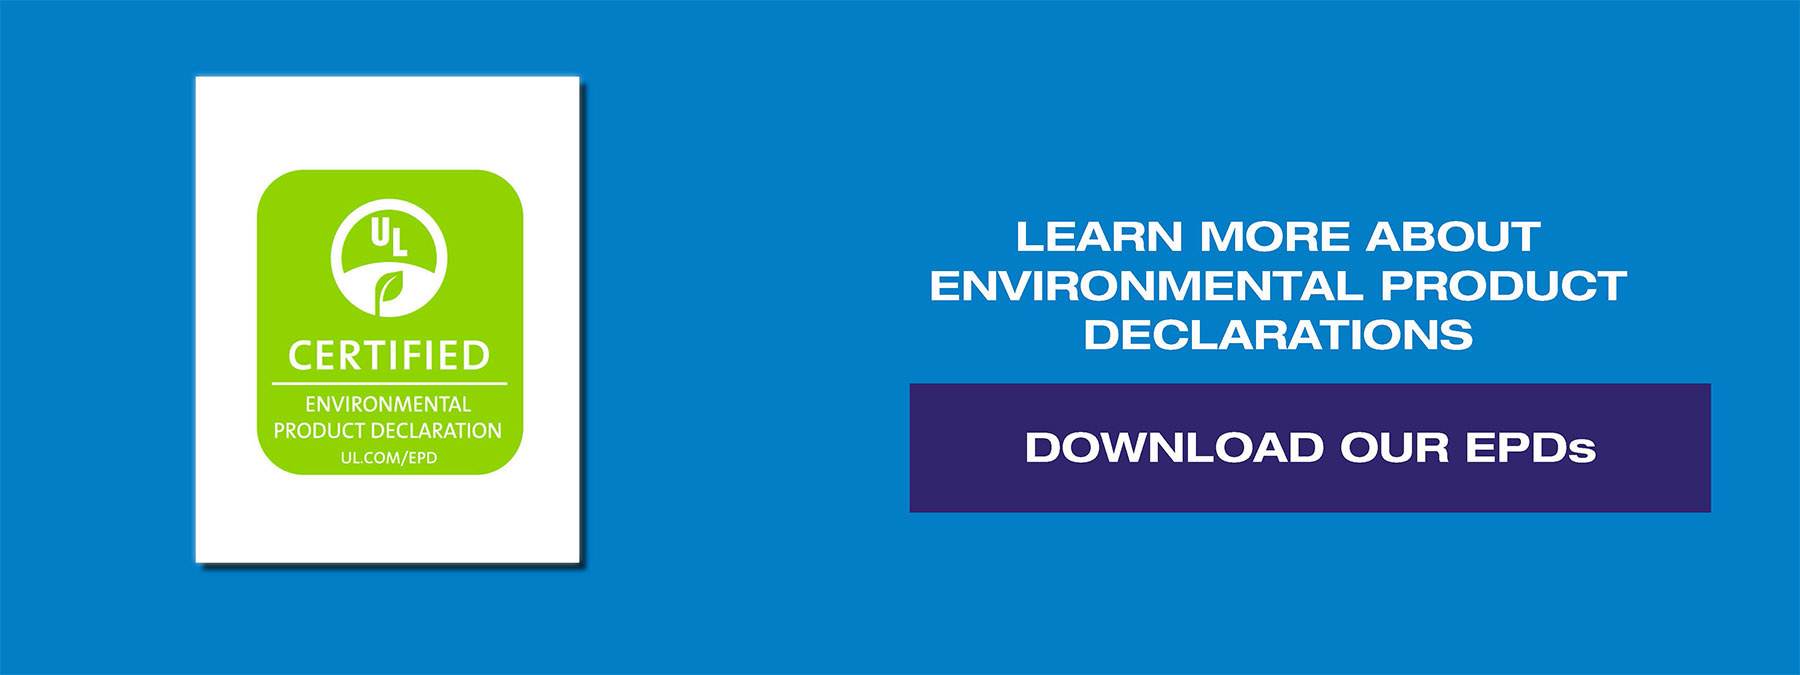 Learn more about Environmental Product Declarations